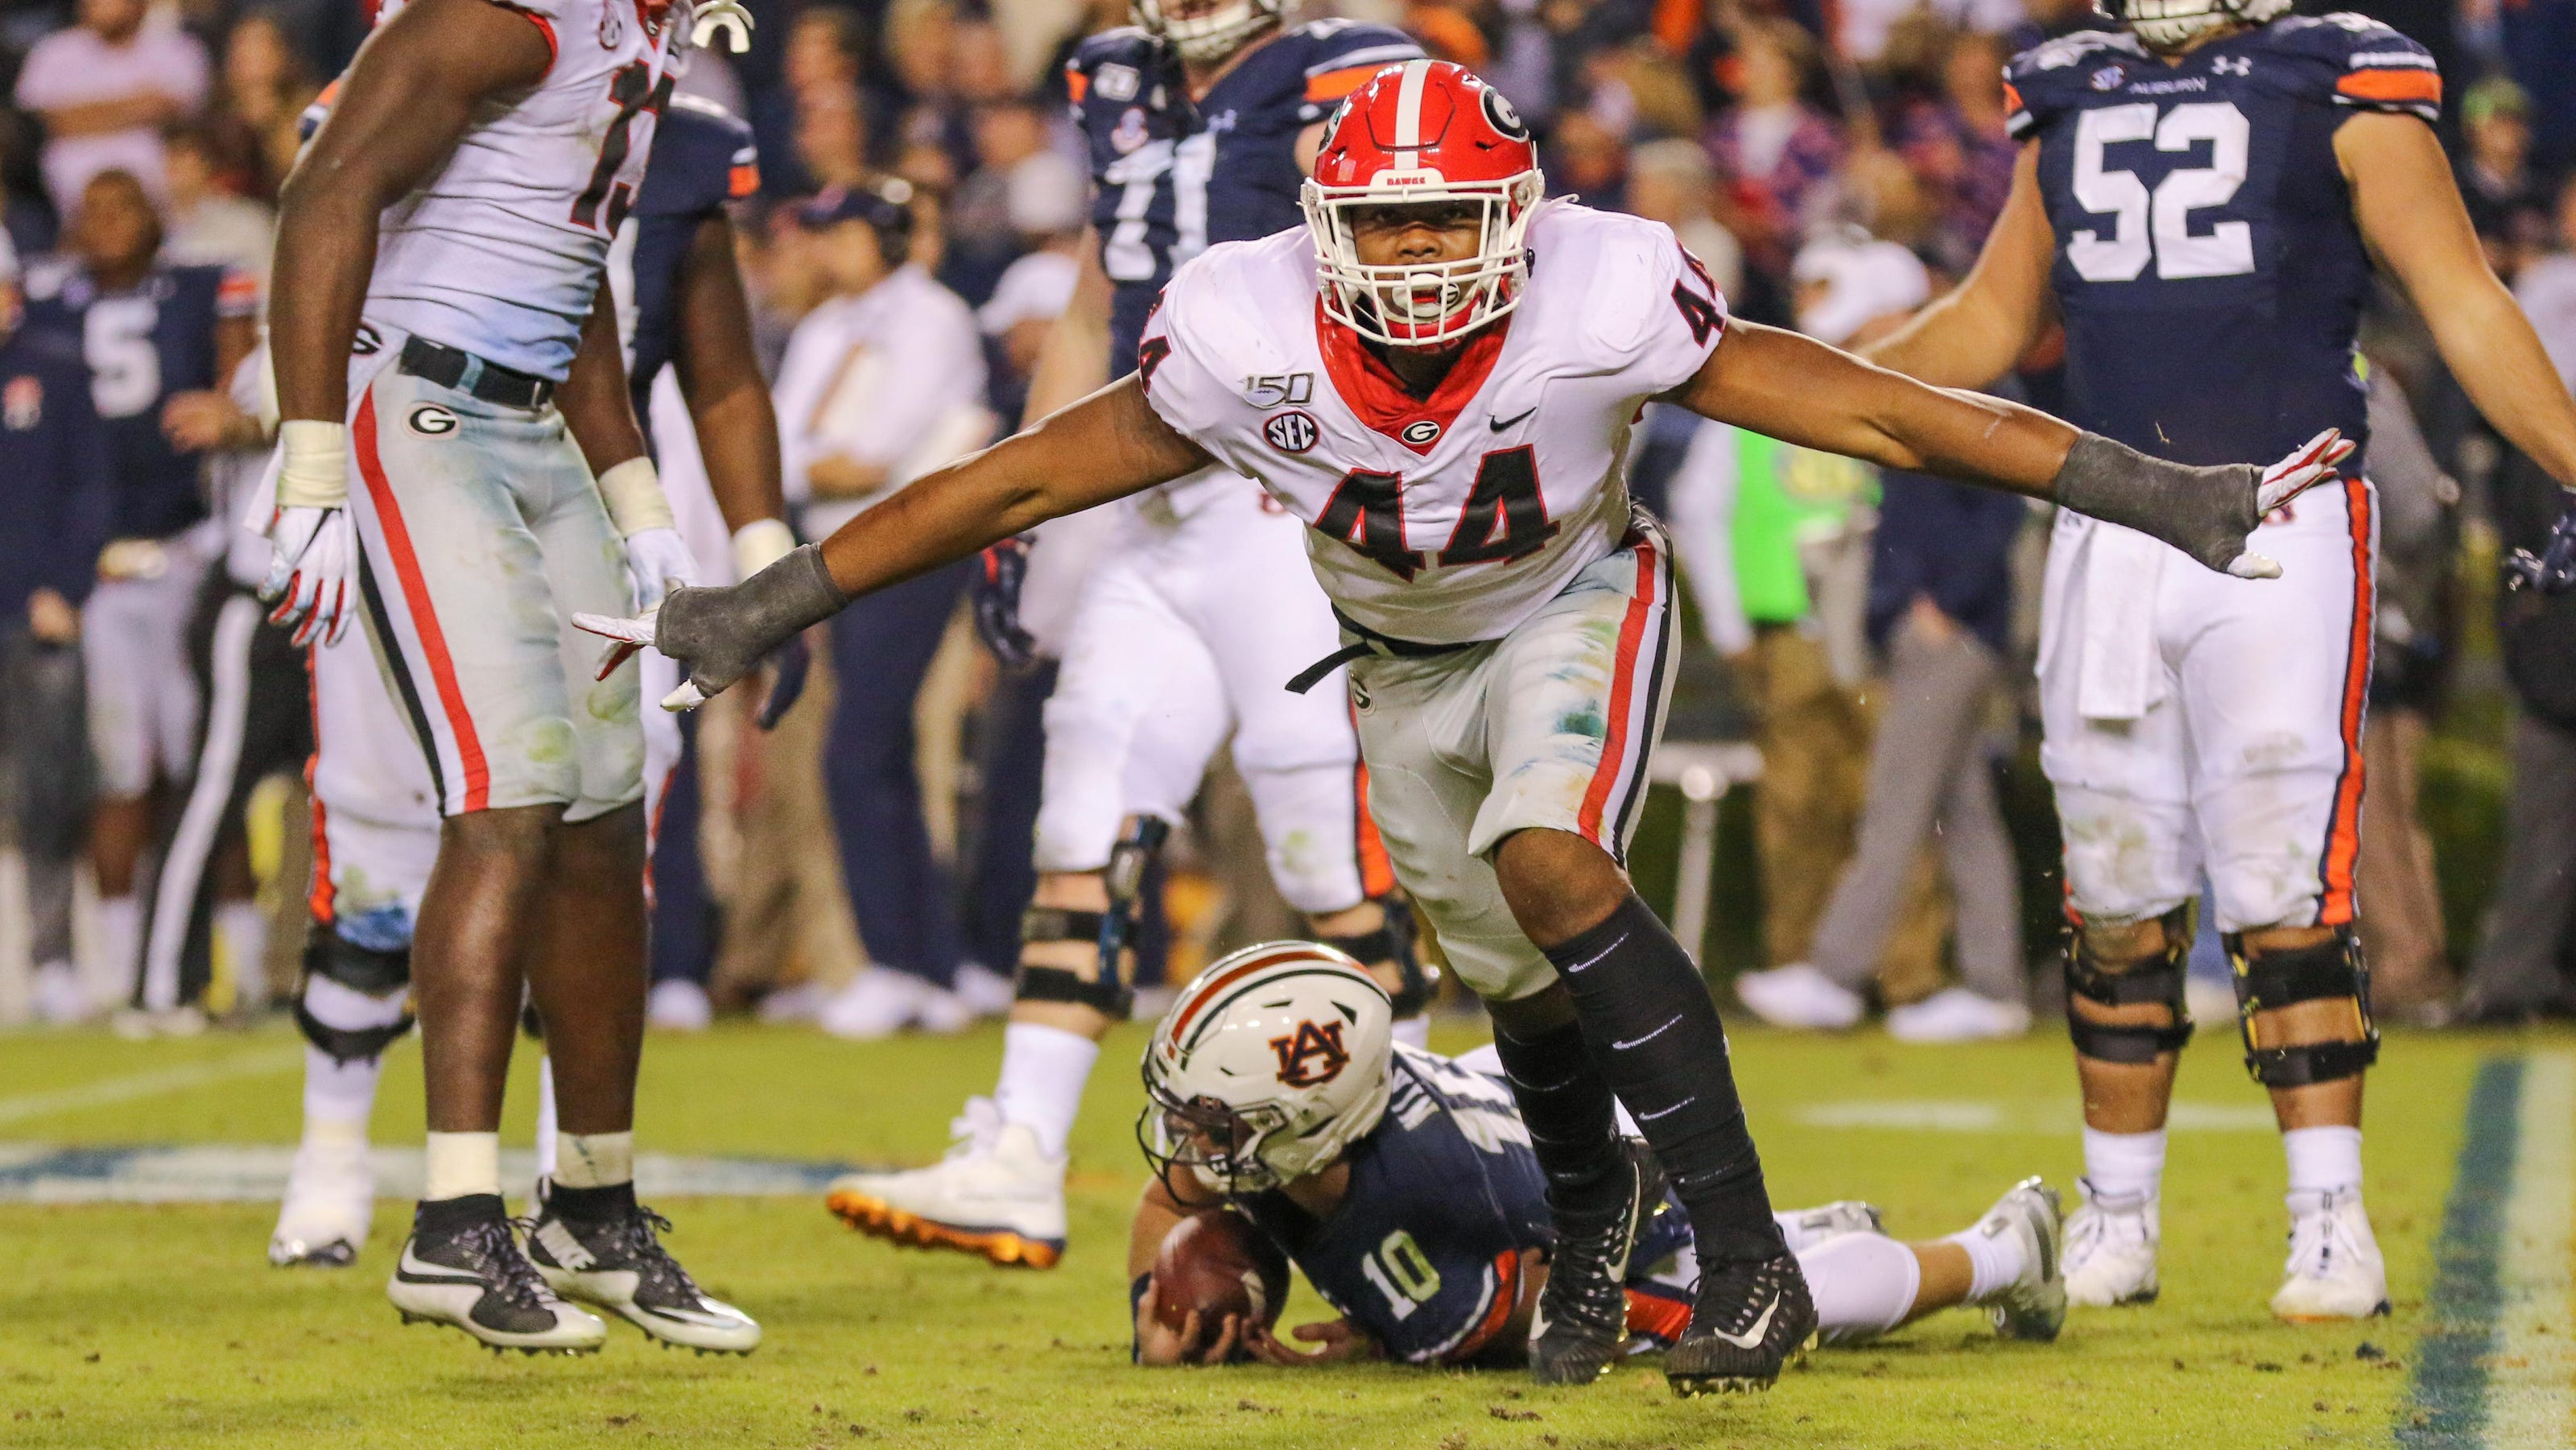 UGA football vs. Auburn: Kickoff time, how to stream, TV channel, betting line